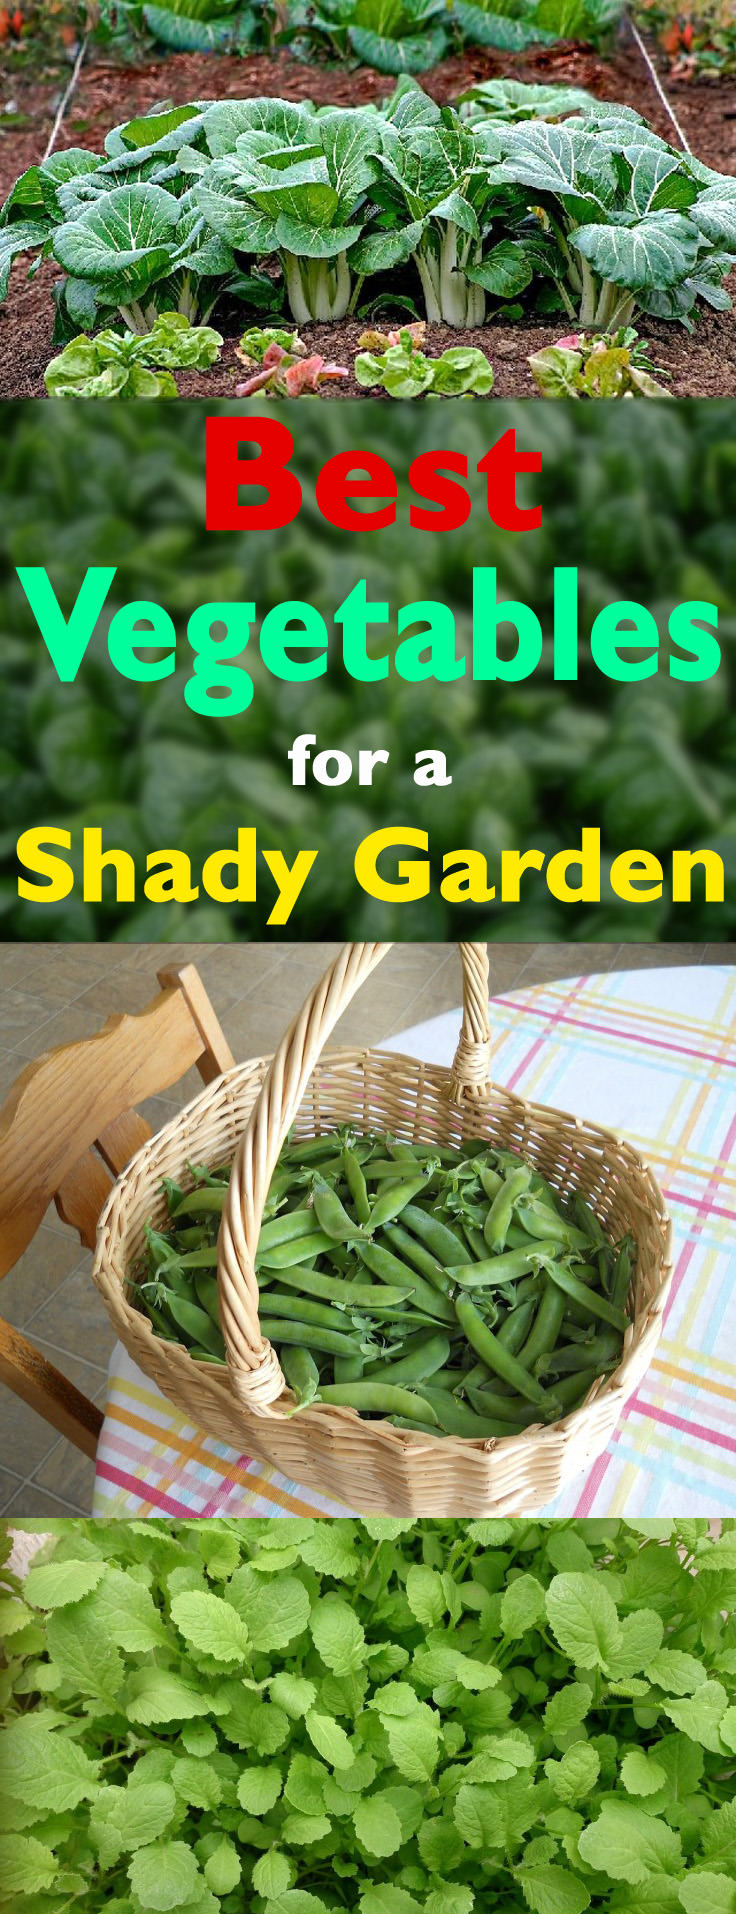 Growing Peppers In Your Vegetable Garden: Best Vegetables For Shady Garden